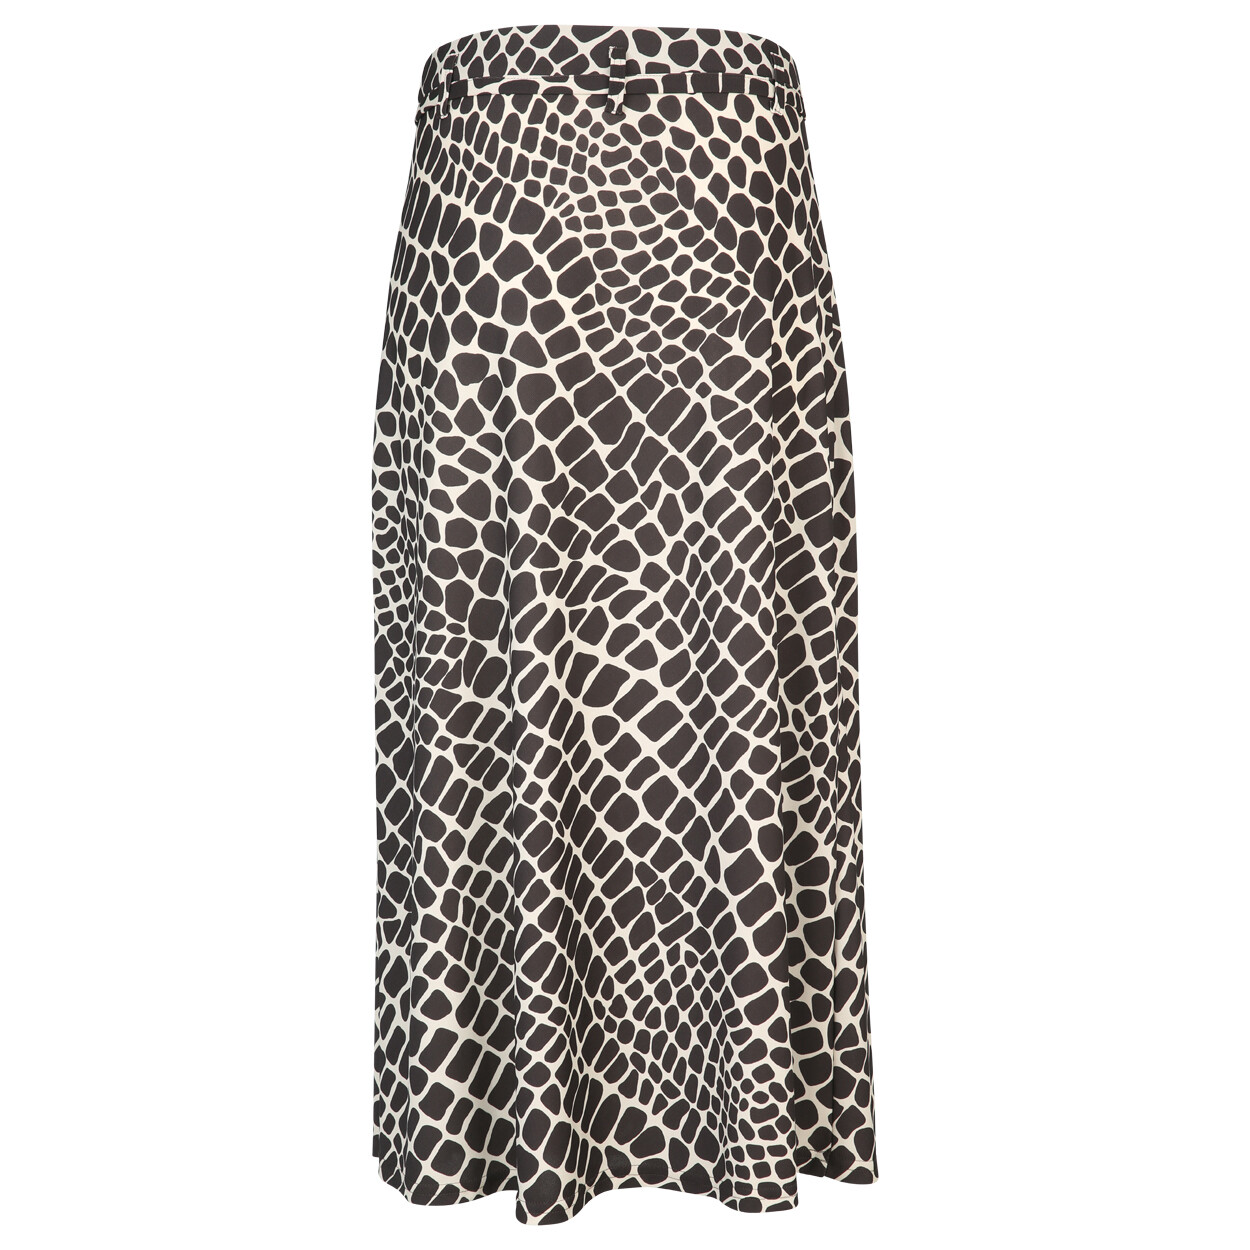 Karen Skirt Croco